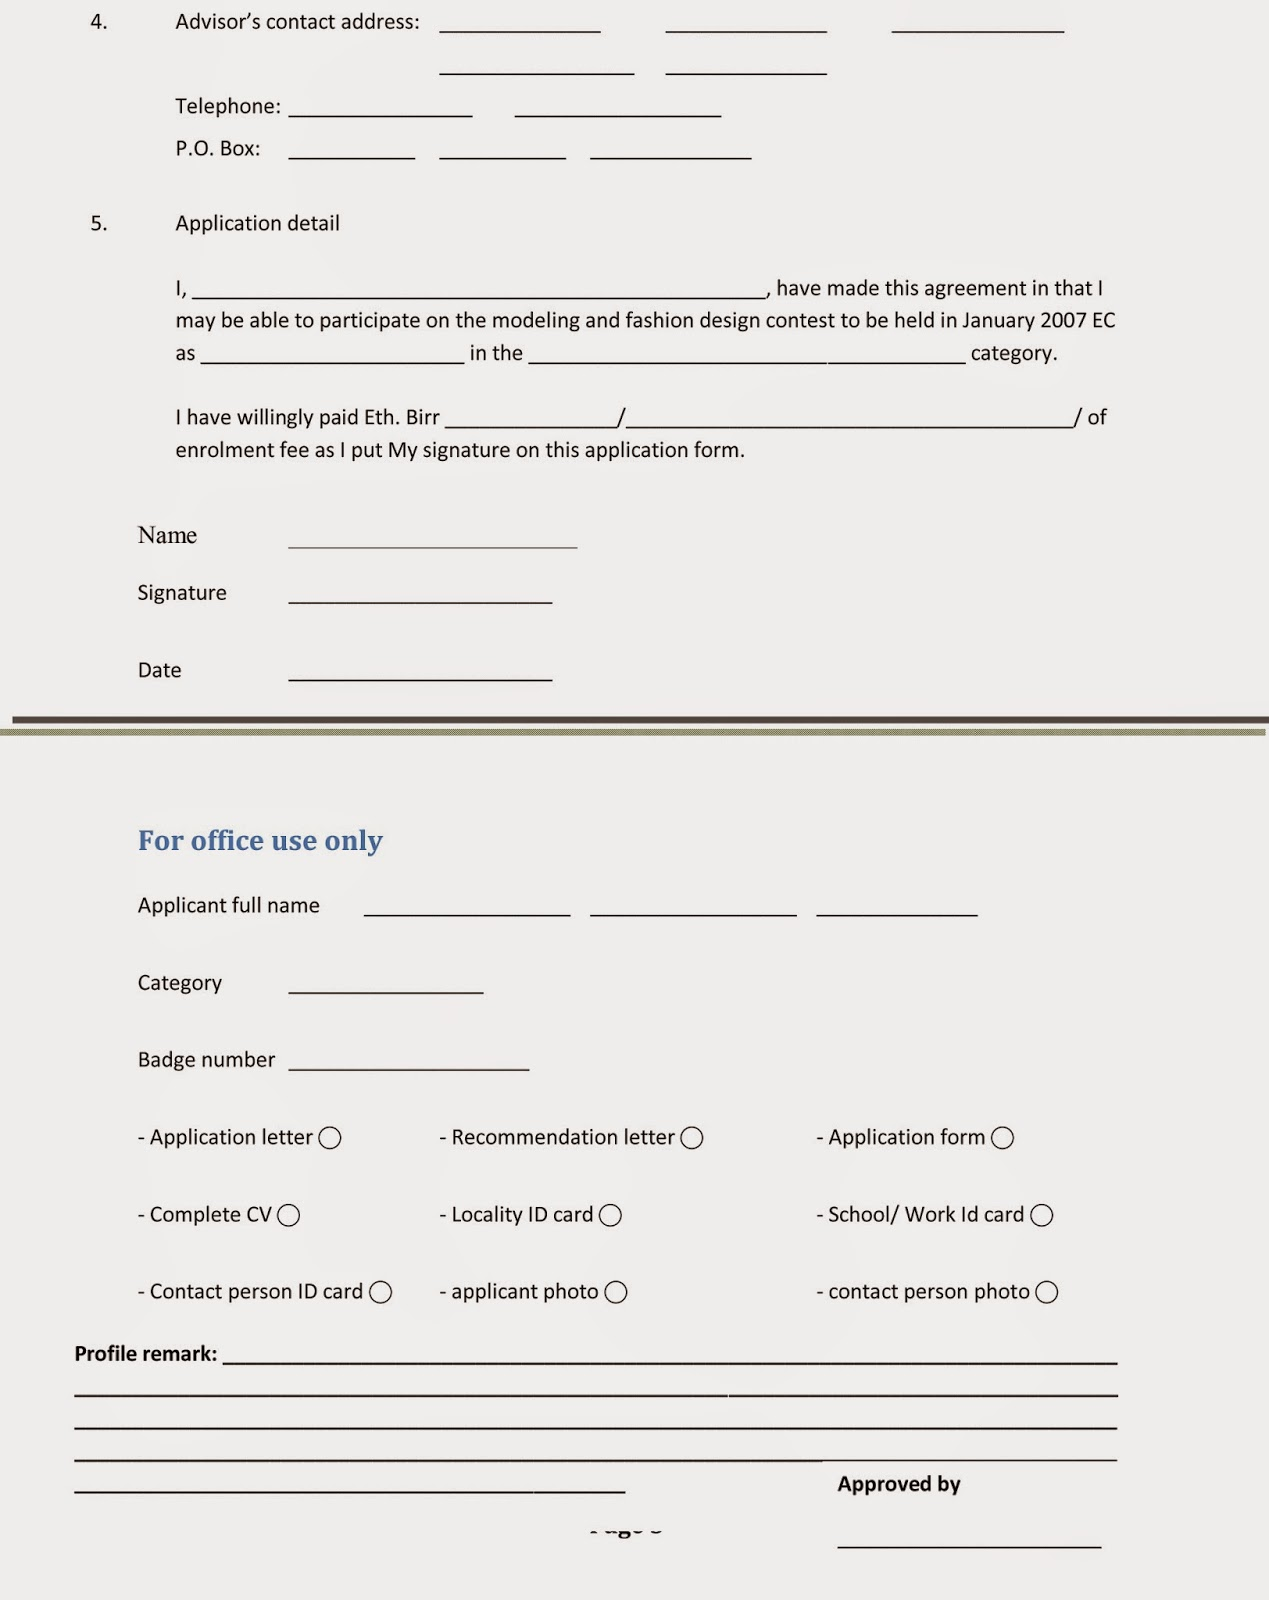 Adama Annual Modeling Fashion Design Contest 2007 E C Designers Registration Form